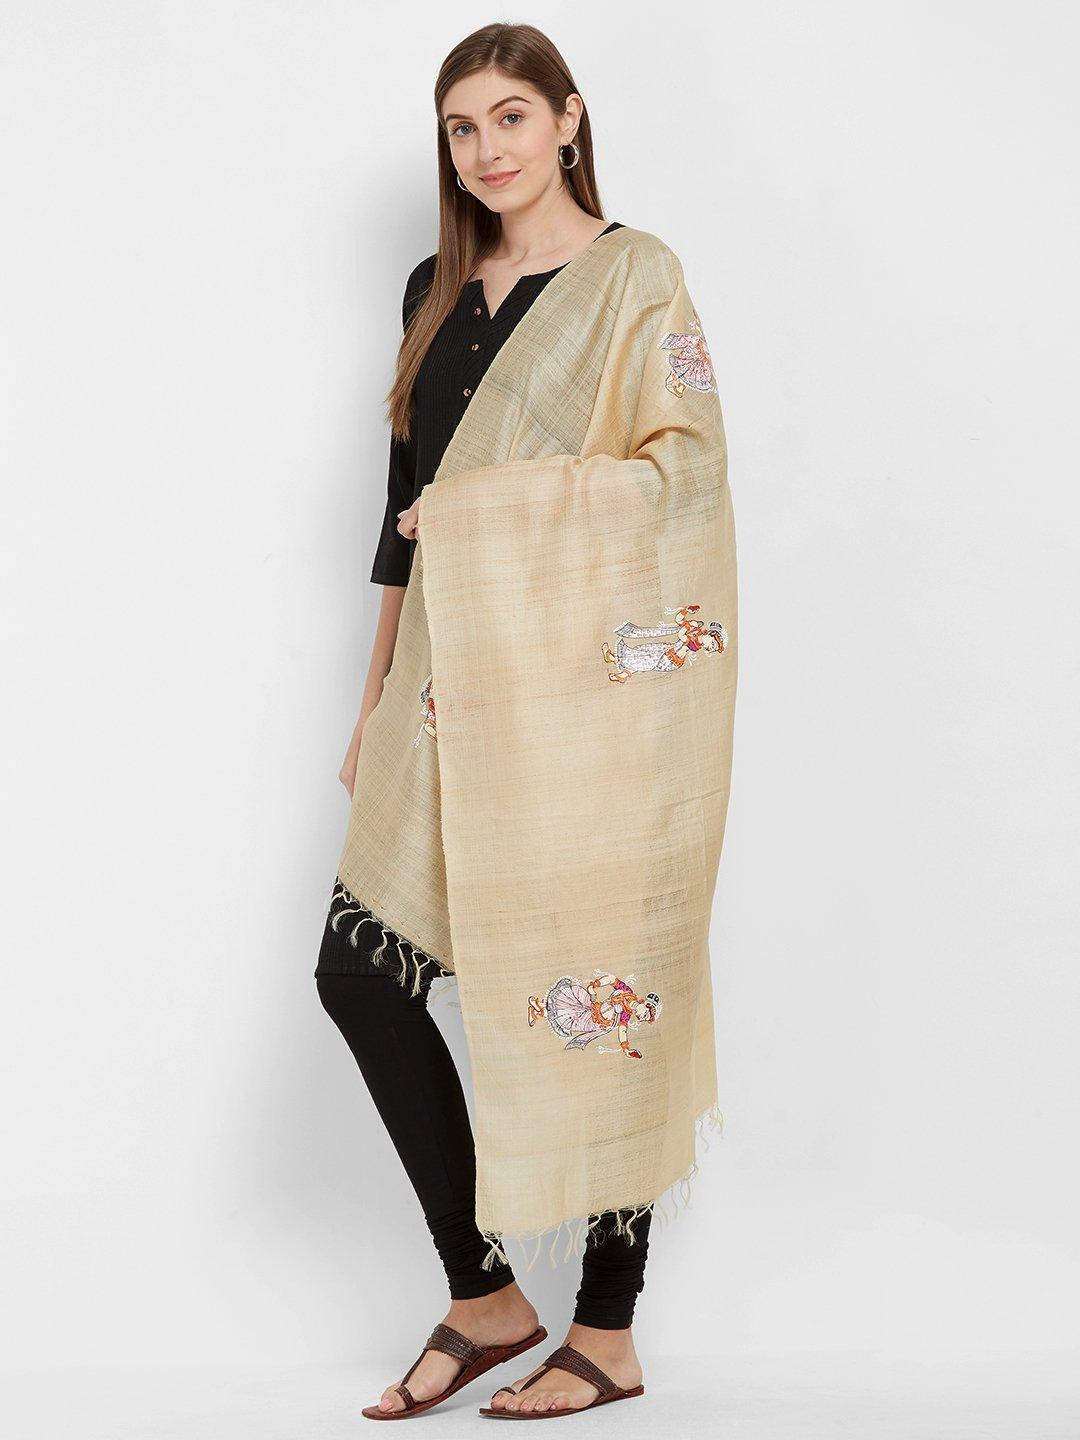 CraftsCollection.in -Beige Tussar Silk Stole with handpainted Pattachitra motifs